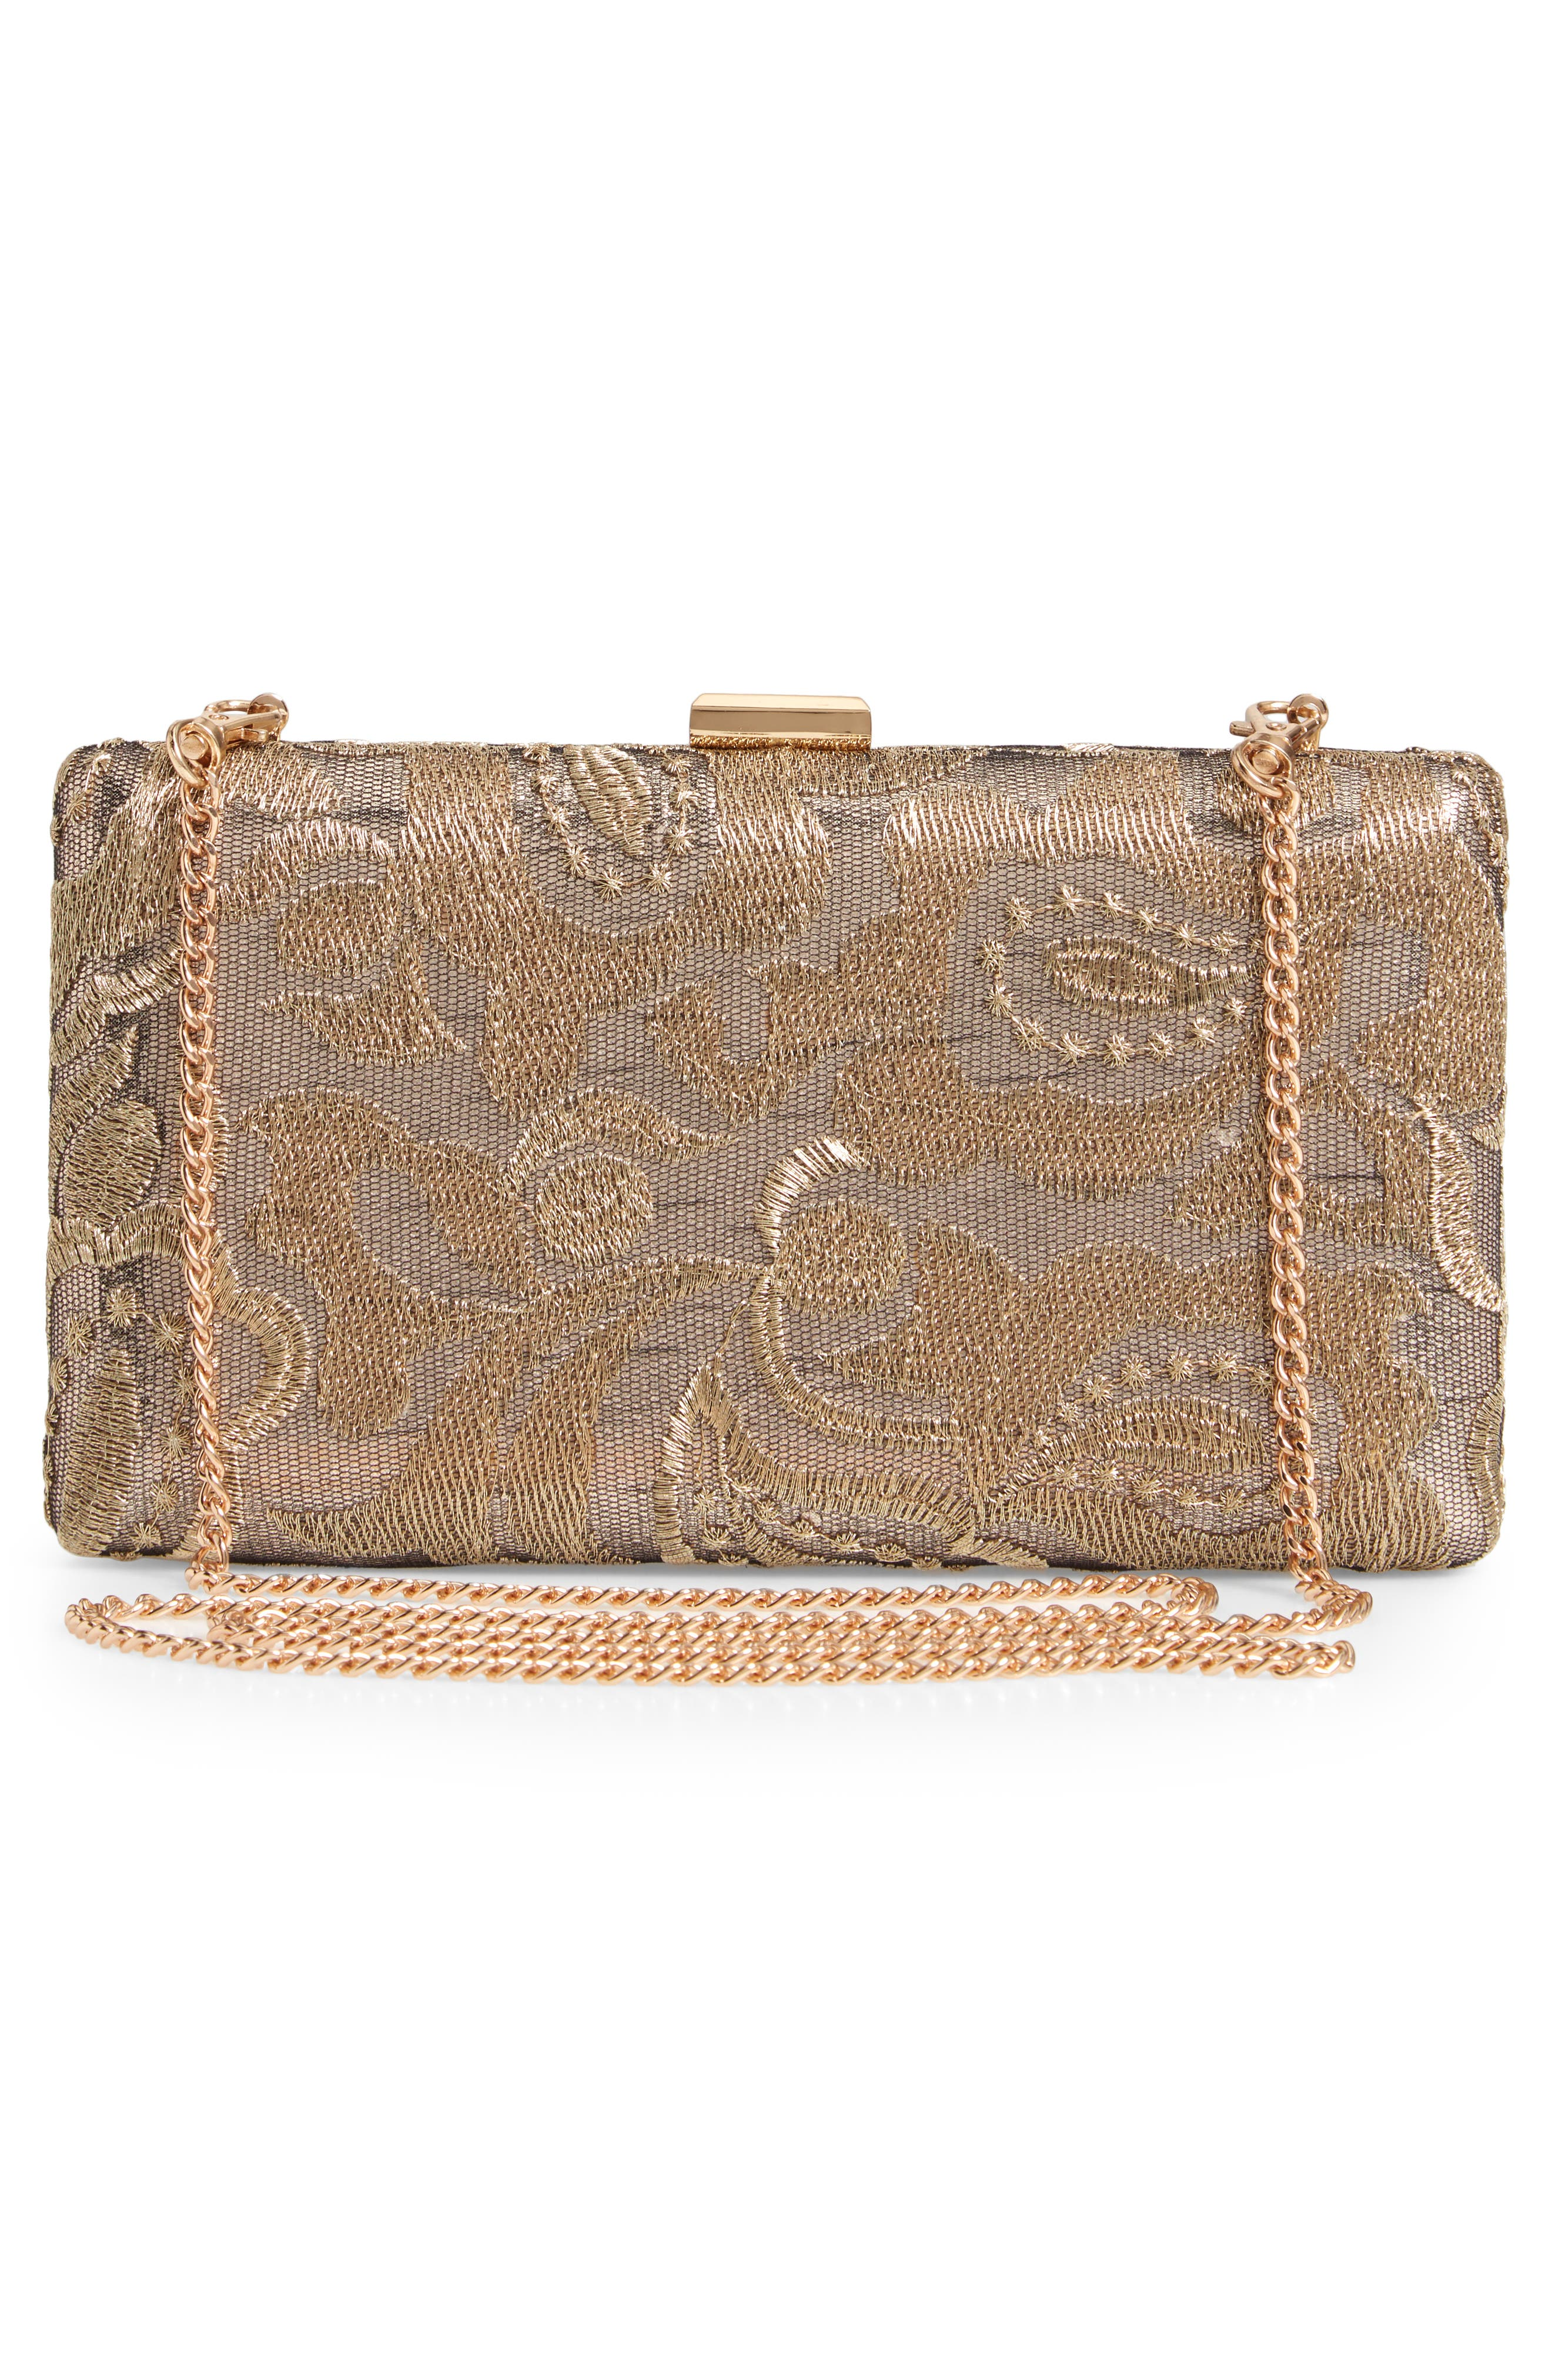 NORDSTROM, Metallic Lace Pattern Box Minaudière, Alternate thumbnail 3, color, 710